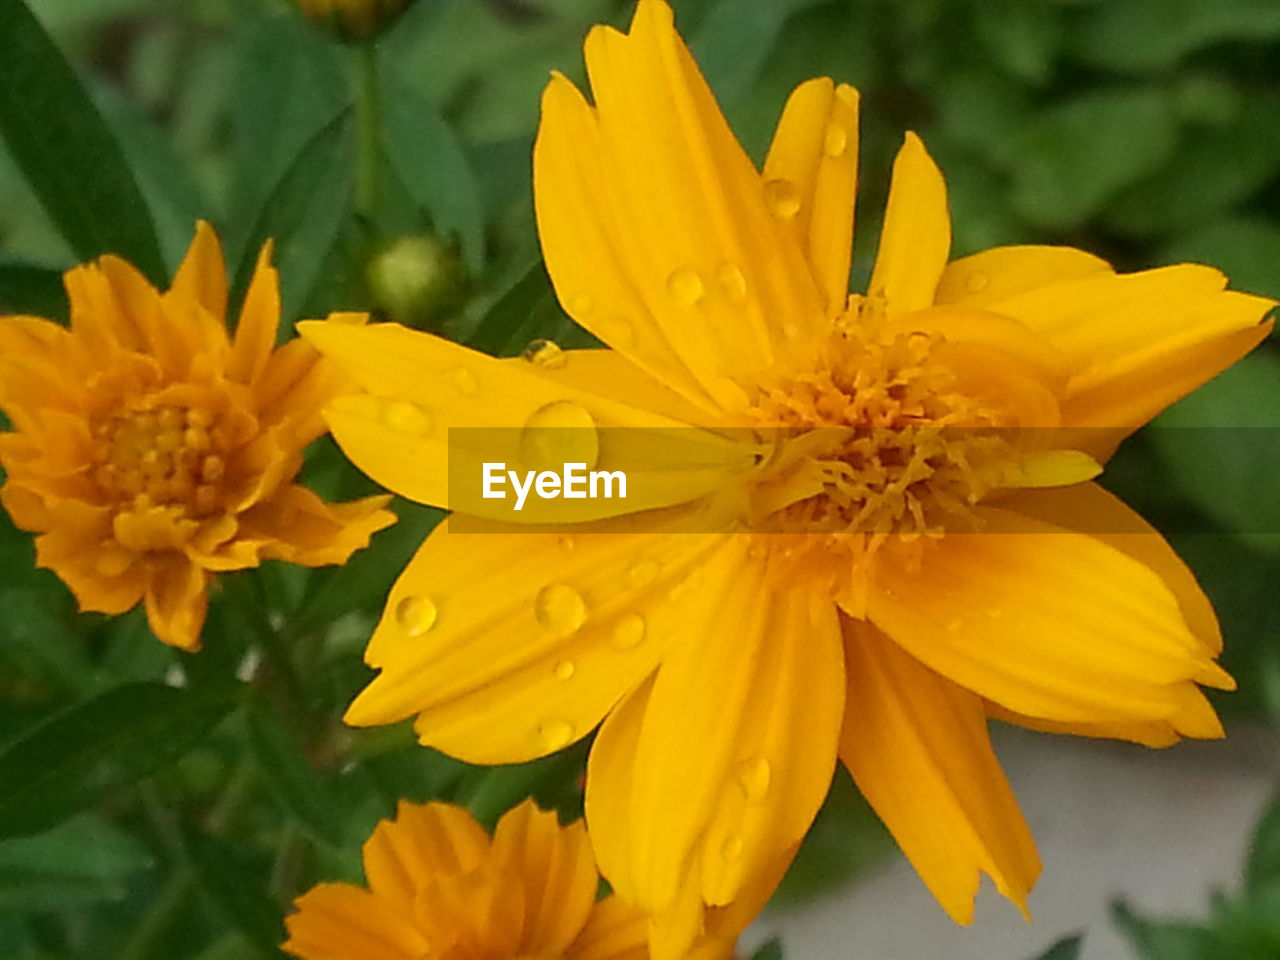 flower, petal, fragility, freshness, flower head, beauty in nature, yellow, nature, growth, blooming, plant, outdoors, day, close-up, no people, focus on foreground, pollen, park - man made space